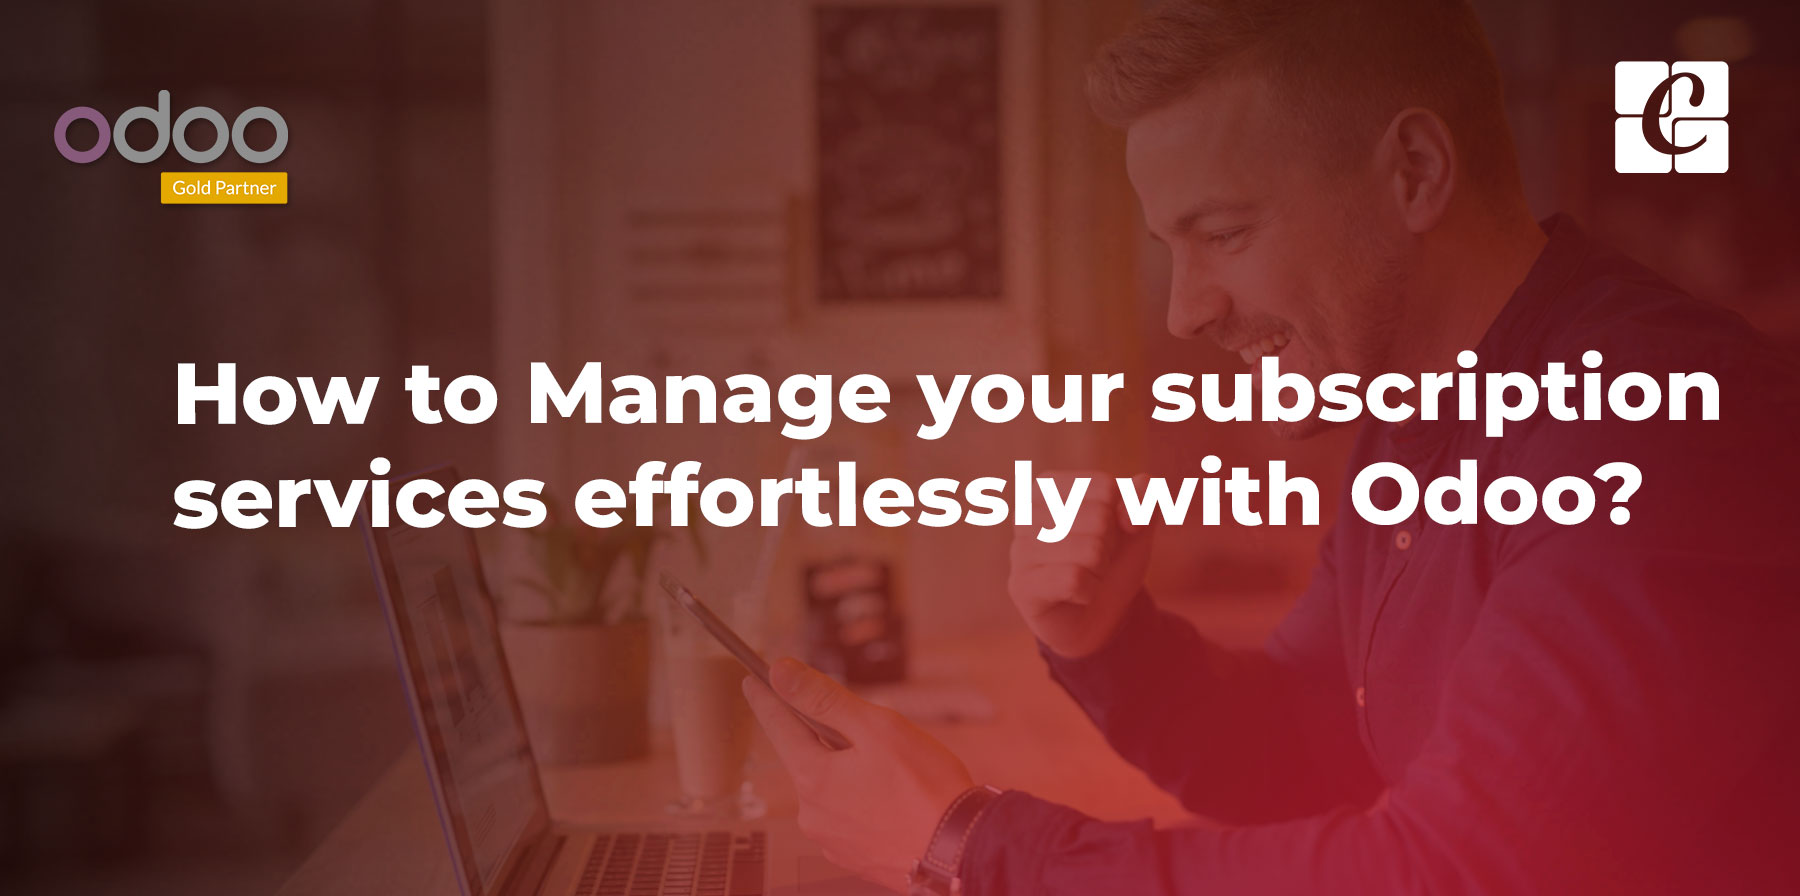 manage-your-subscription-services-effortlessly-with-odoo.jpg